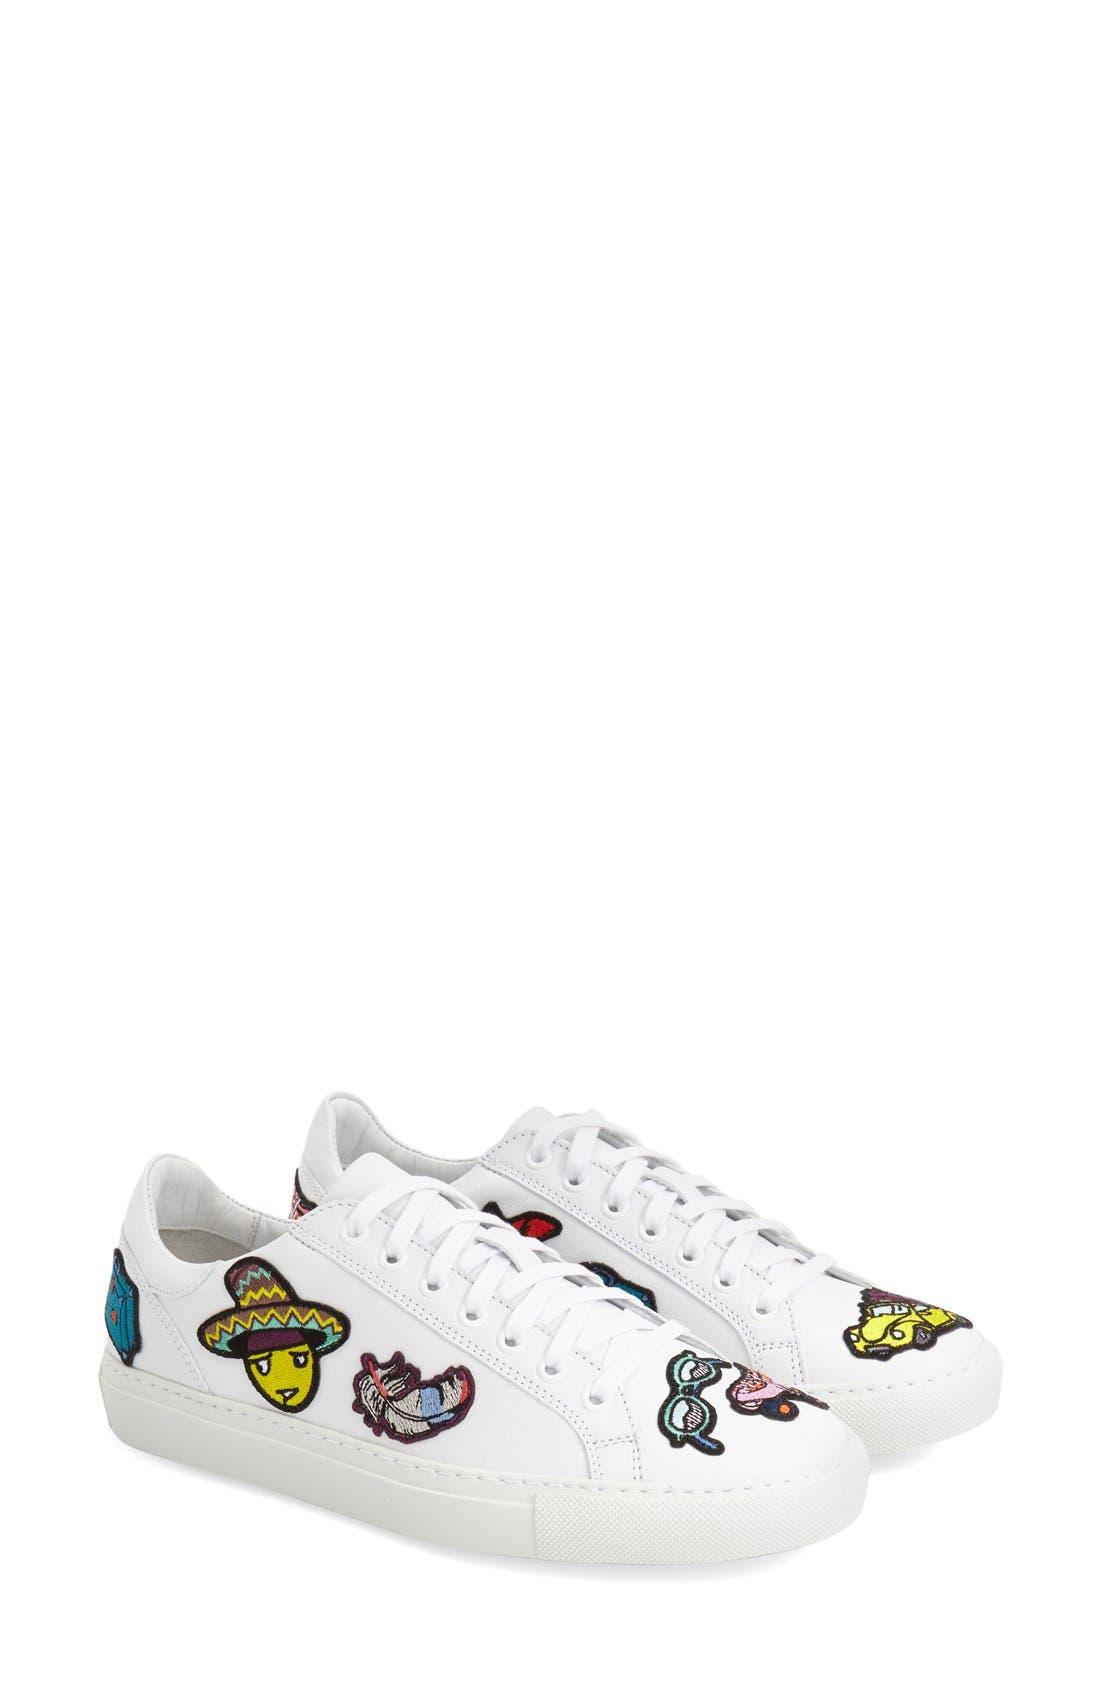 MIRA MIKATI 'Patches' Low Top Sneaker, Main, color, 111